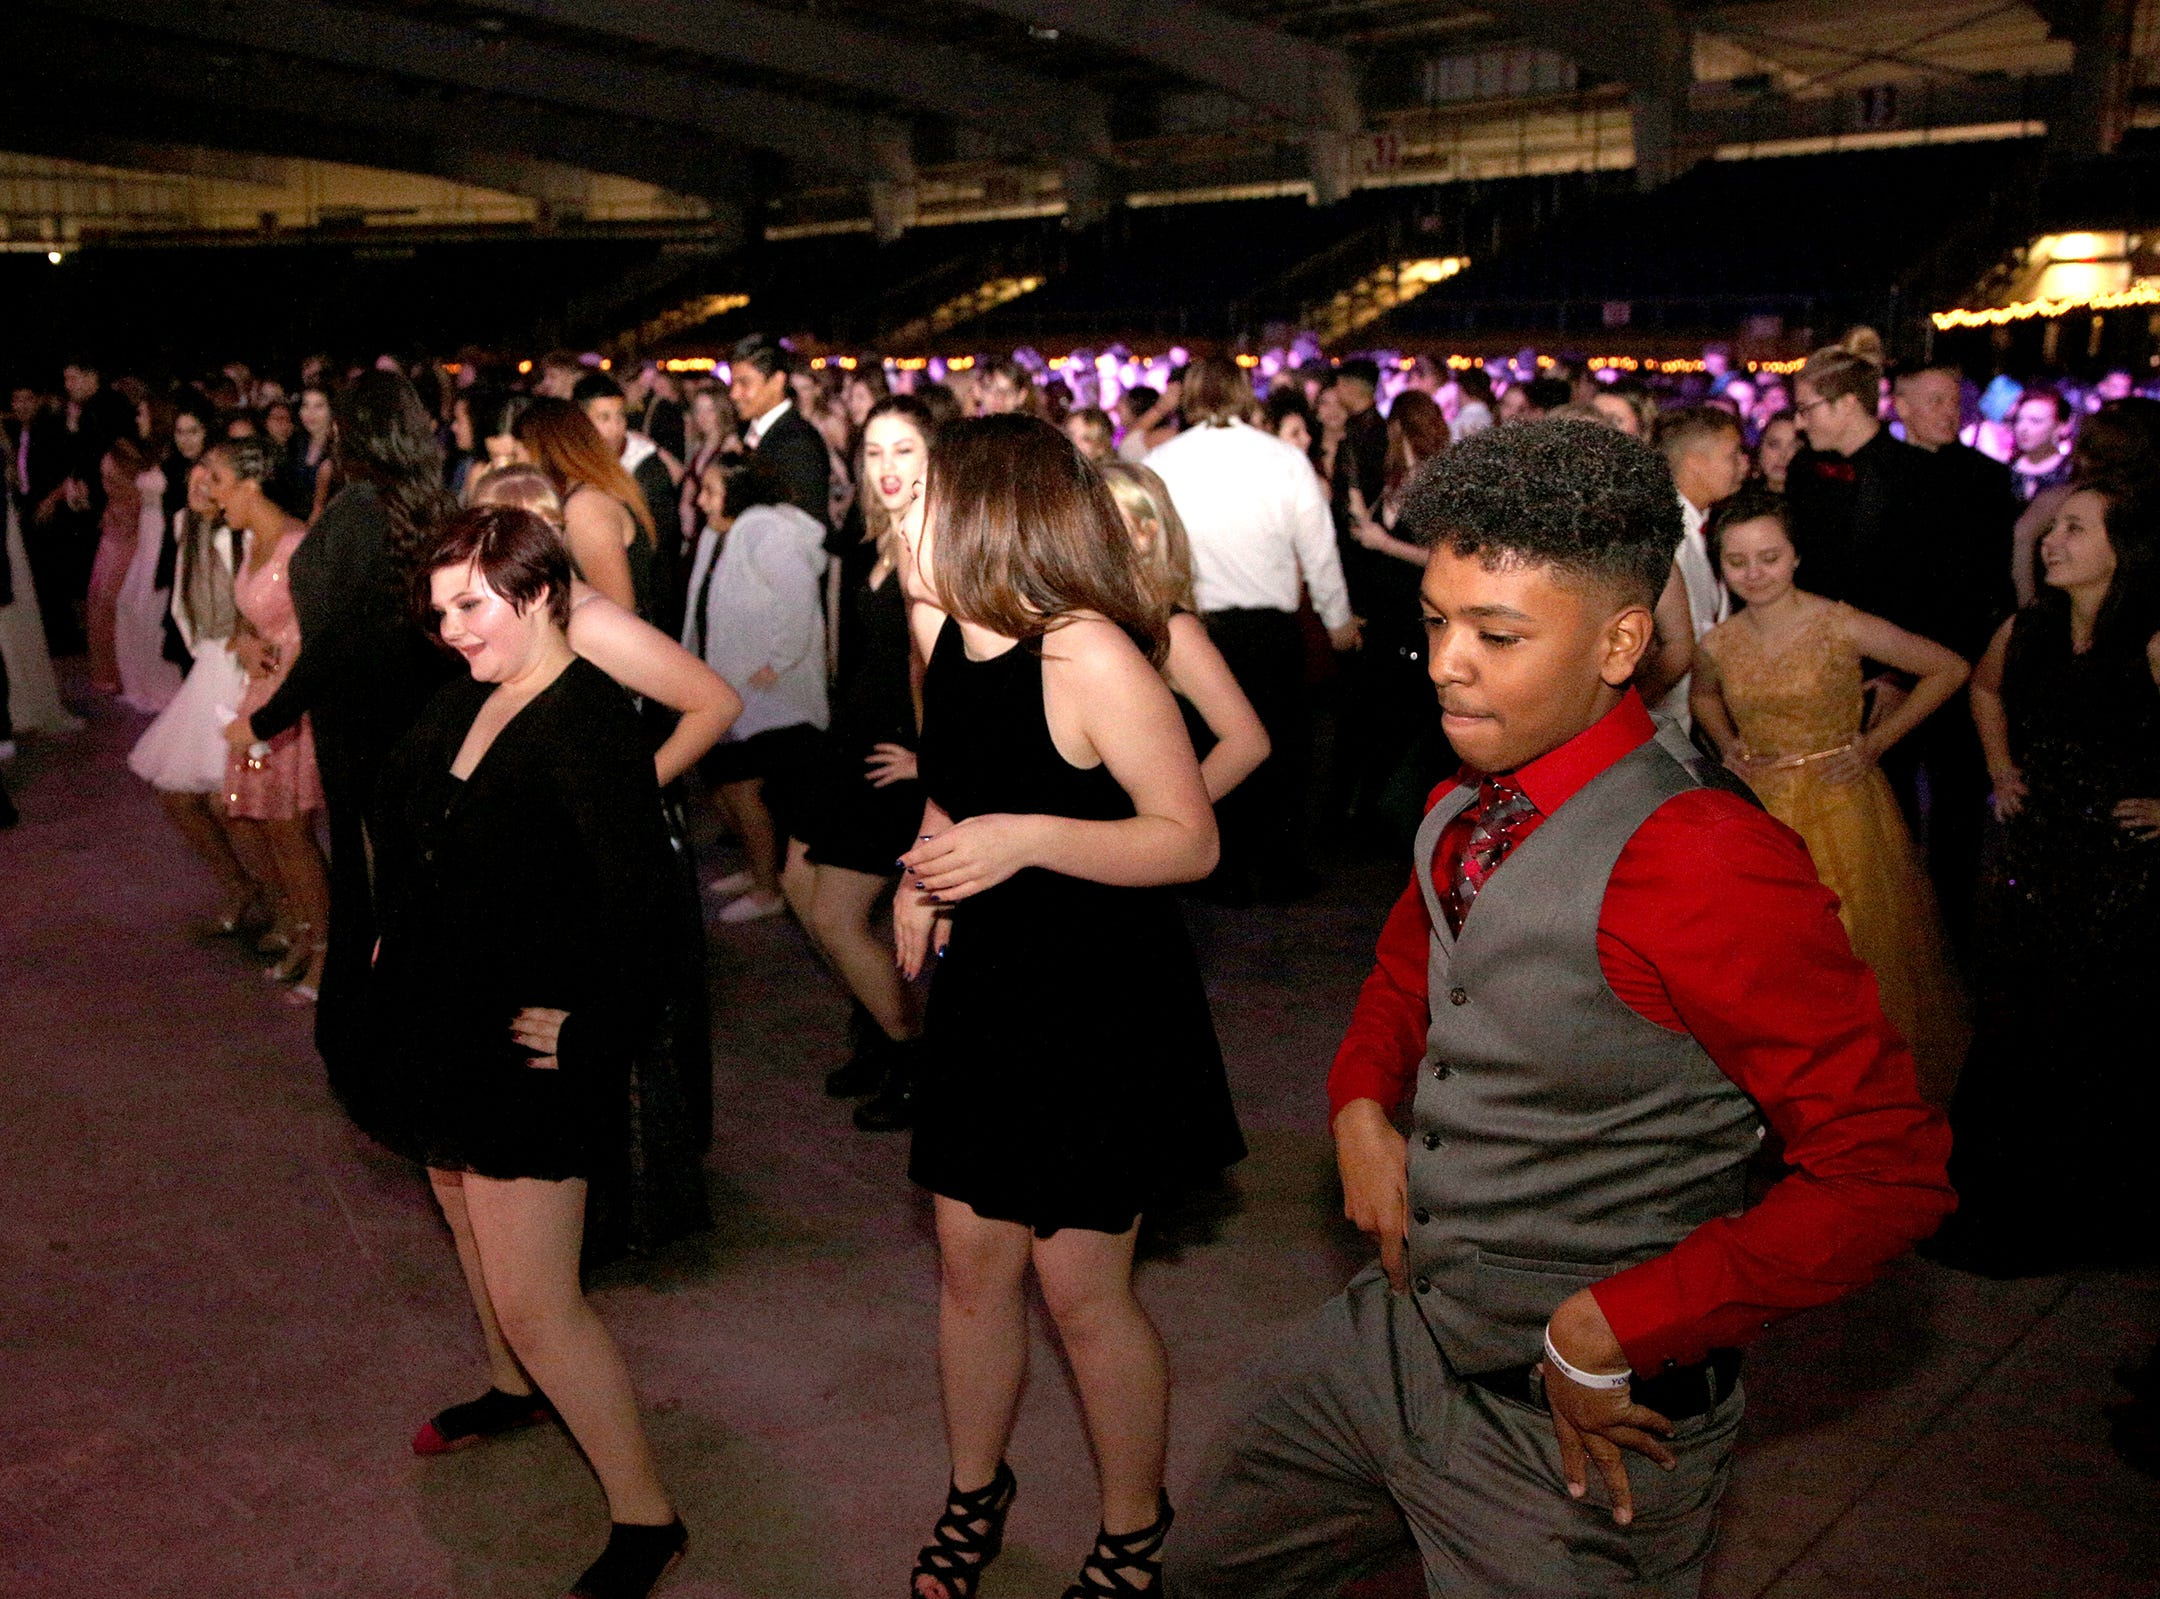 Students dance during the annual SnoBall at the Oregon State Fairgrounds Pavilion in Salem on Saturday, Dec. 1, 2018. This year was the 65th annual dance.